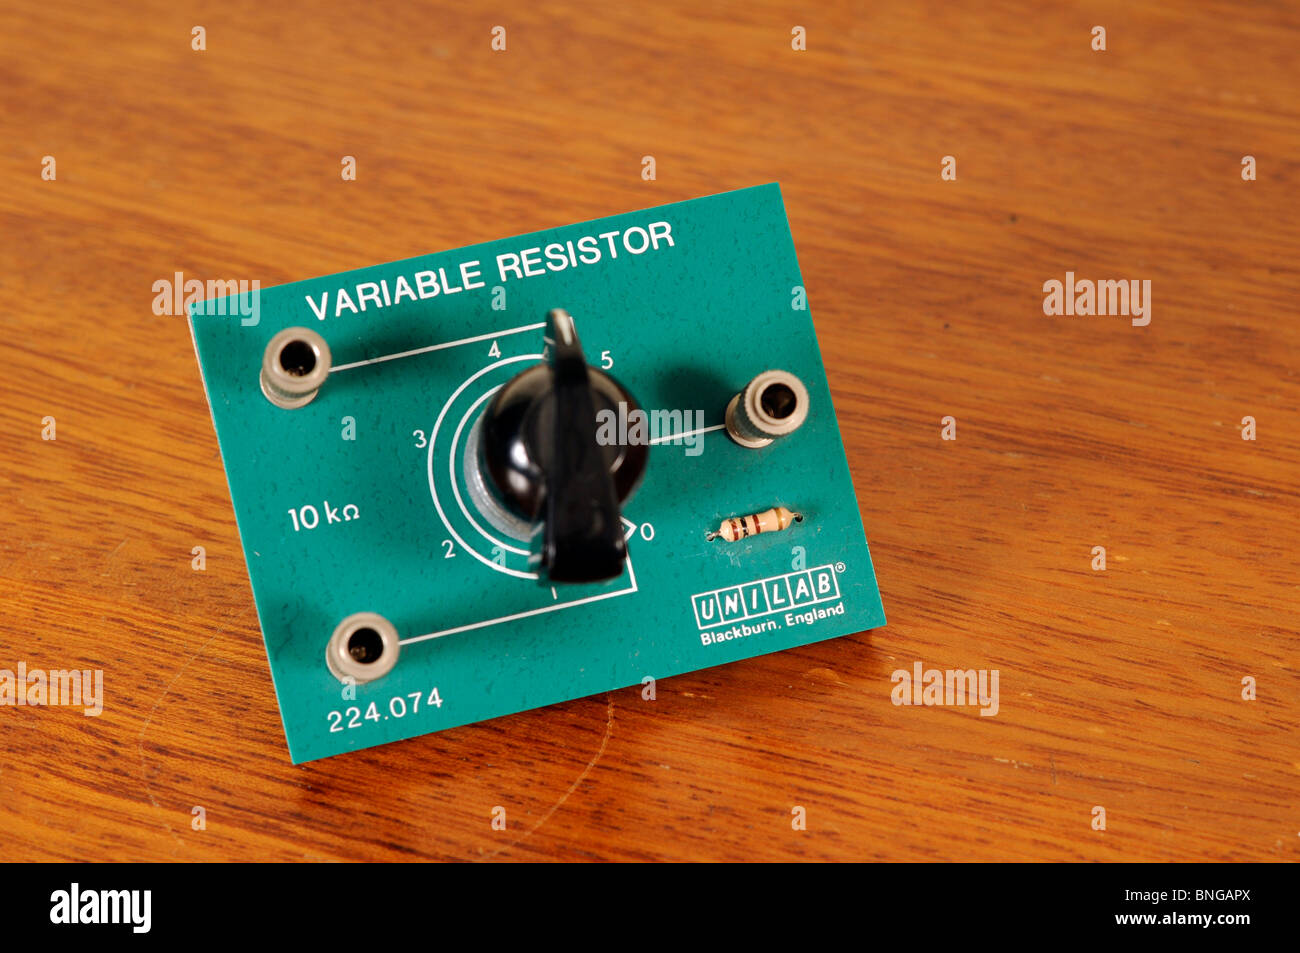 Variable Resistor Stock Photos Variable Resistor Stock Images Alamy